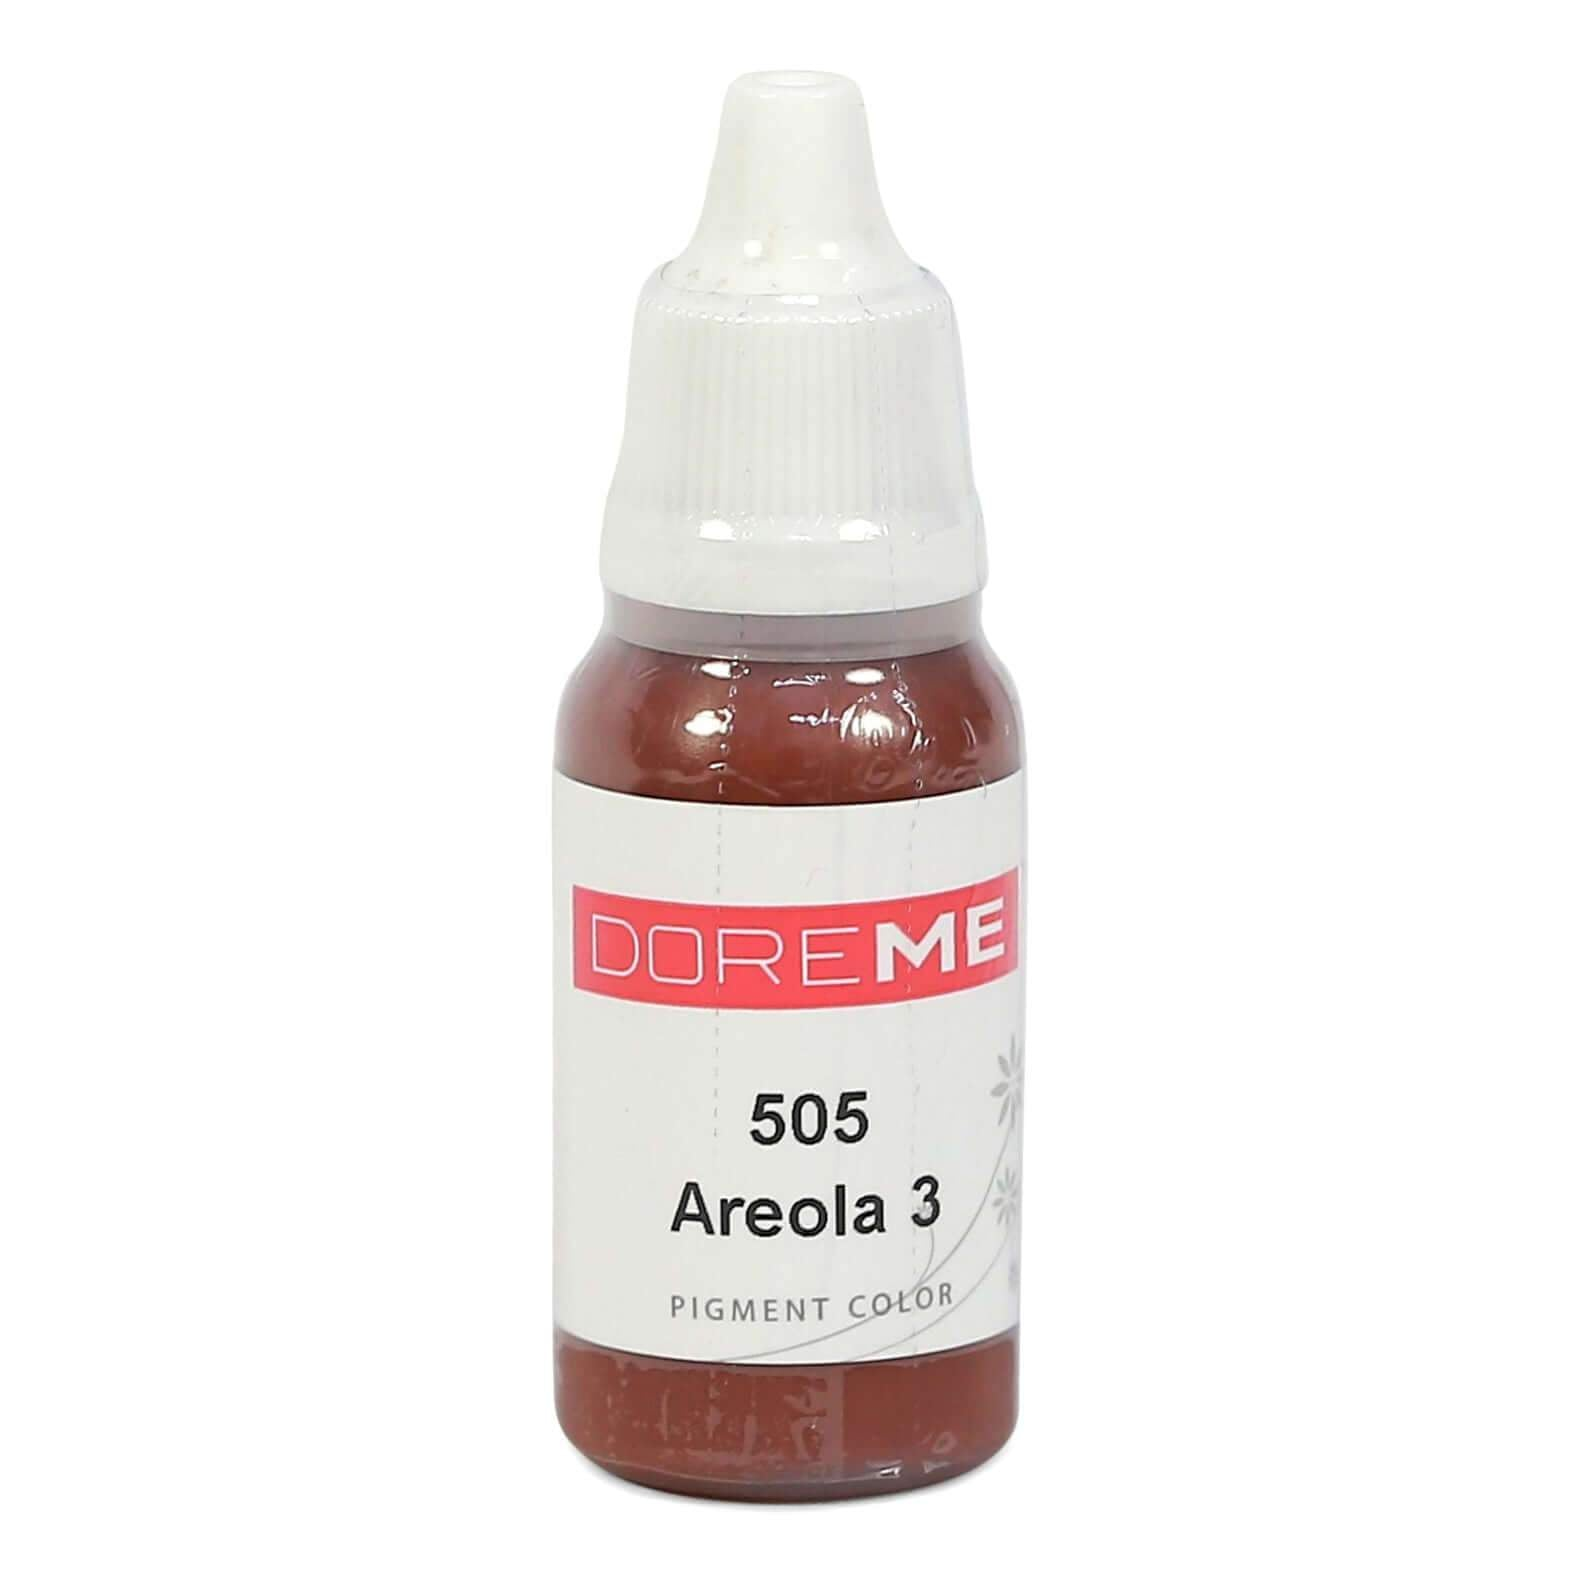 Doreme Areola Tattoo Pigments 505 Areola 3 (w) - Beautiful Ink UK trade and wholesale supplier